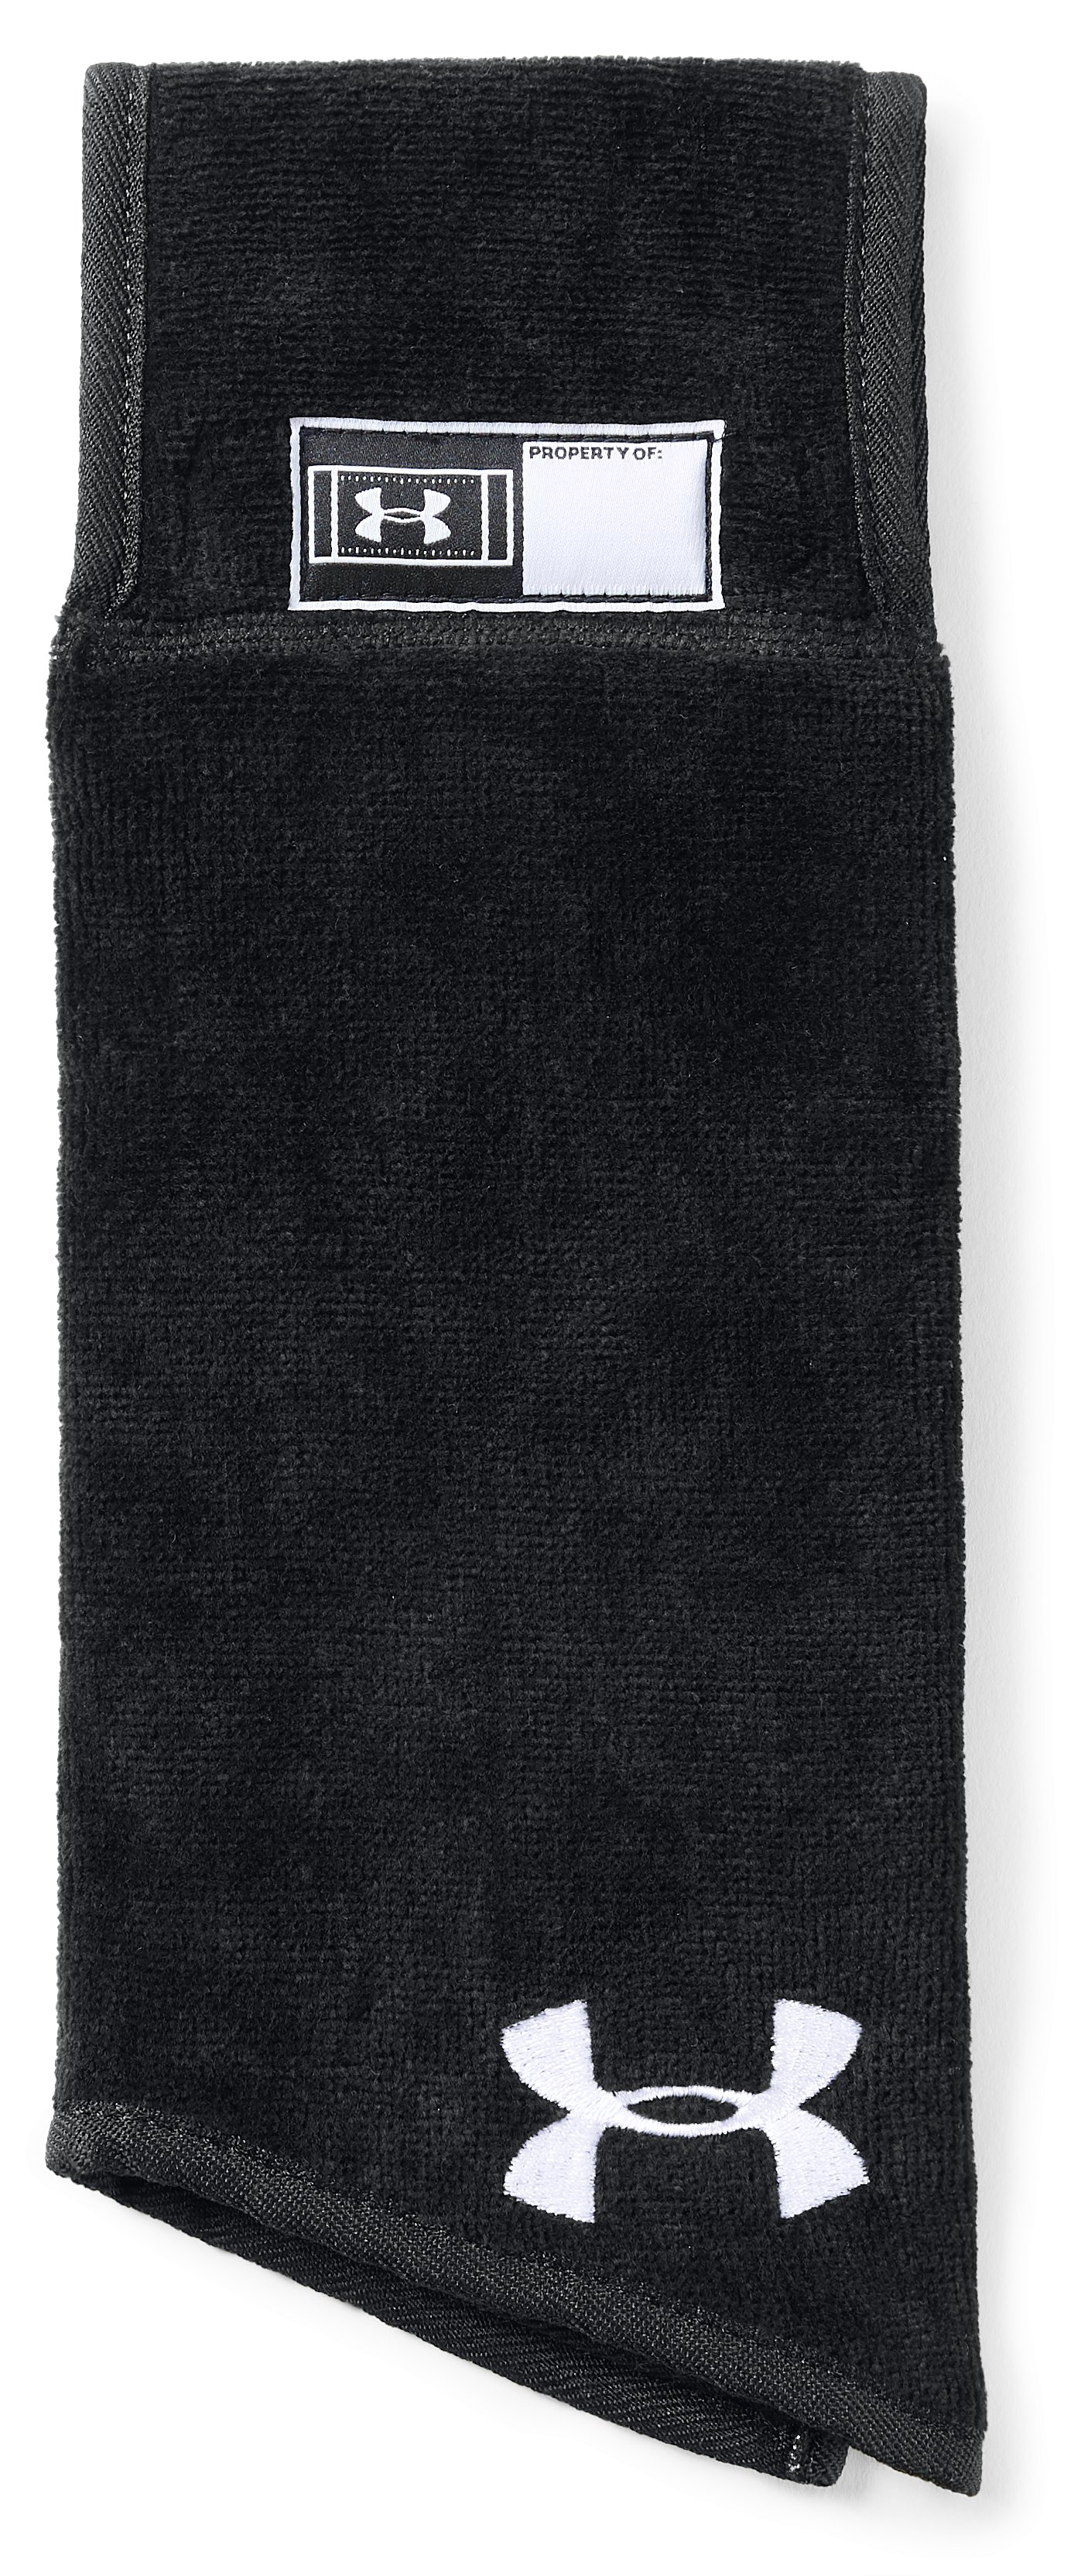 UA SkiILL Towel 1 Color $18.00